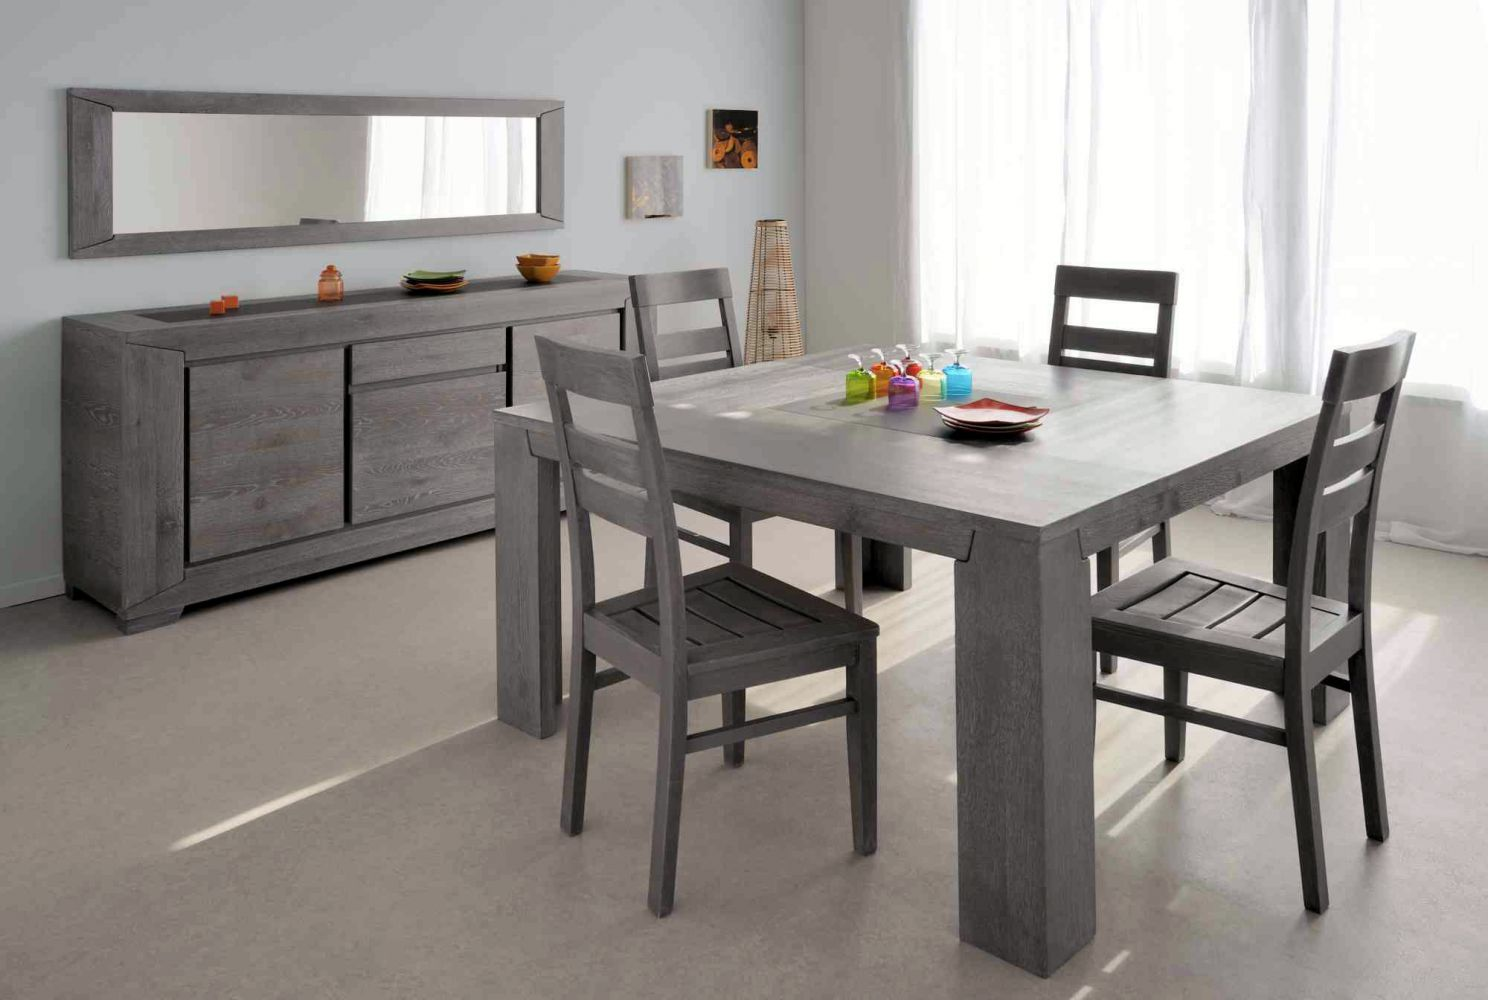 Salle a manger compl te conforama table carr e meuble et d coration marseille mobilier for Chemin de table conforama